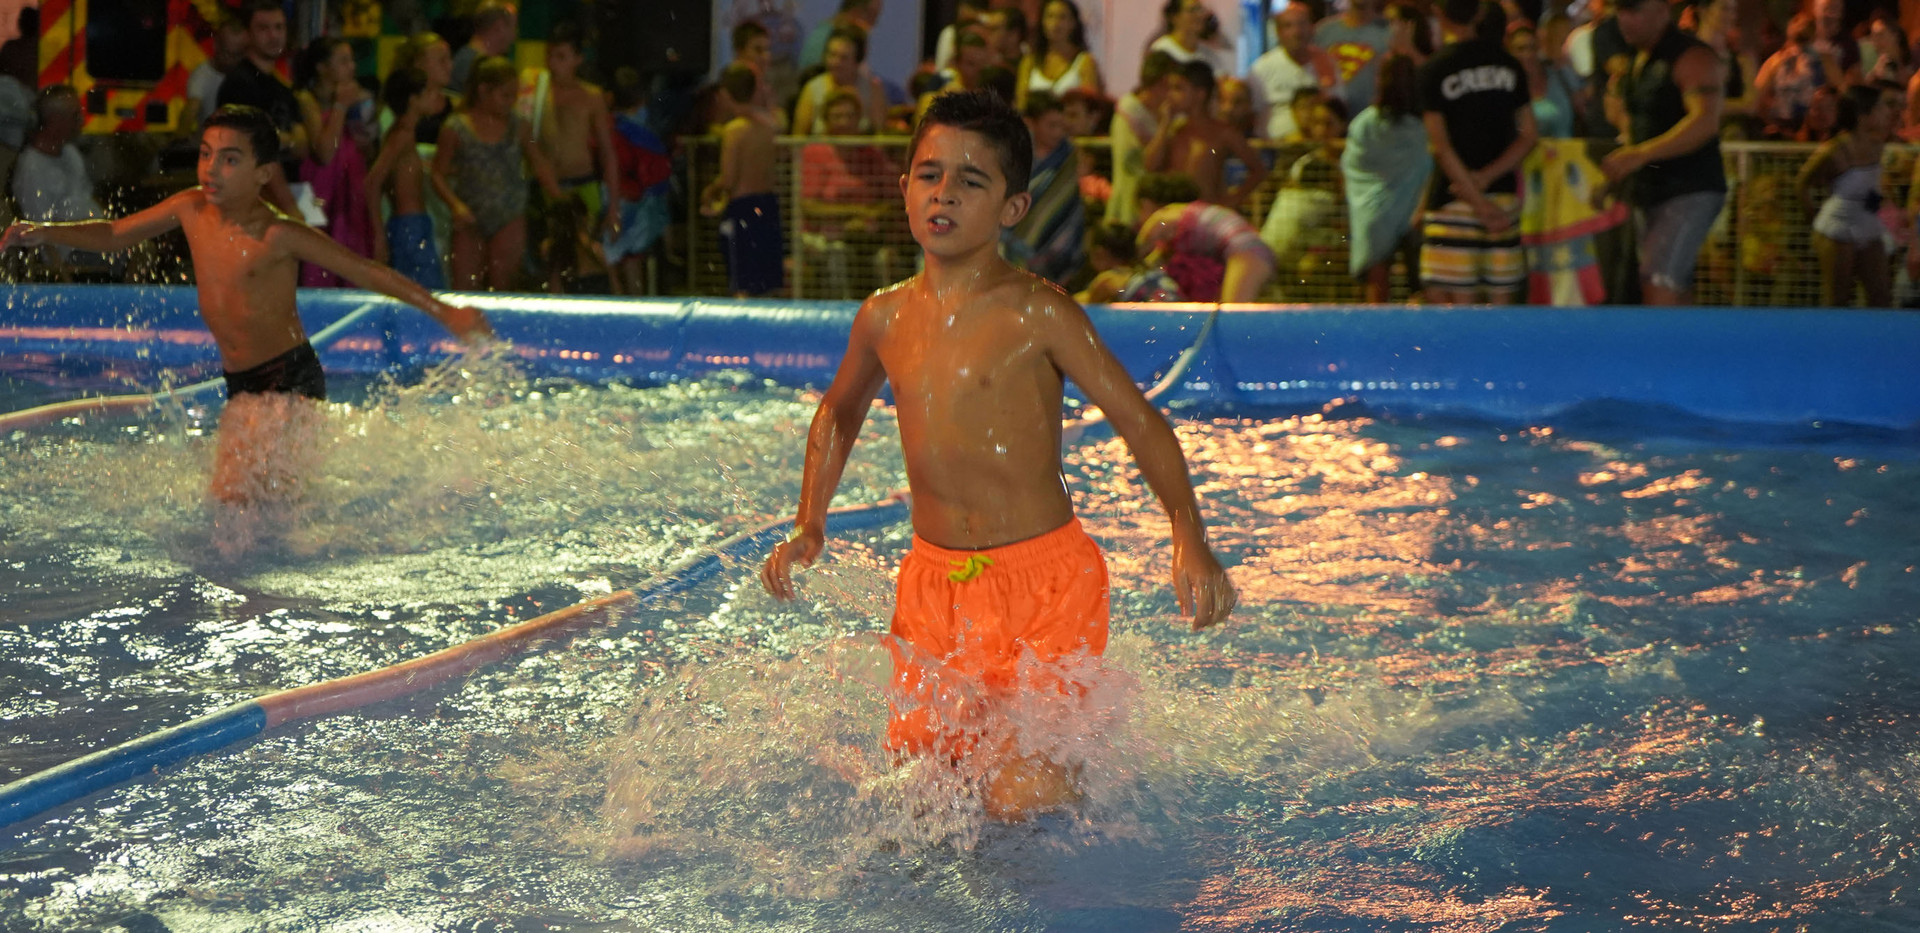 The RGF supports a water sports activity as an alternative to gambling